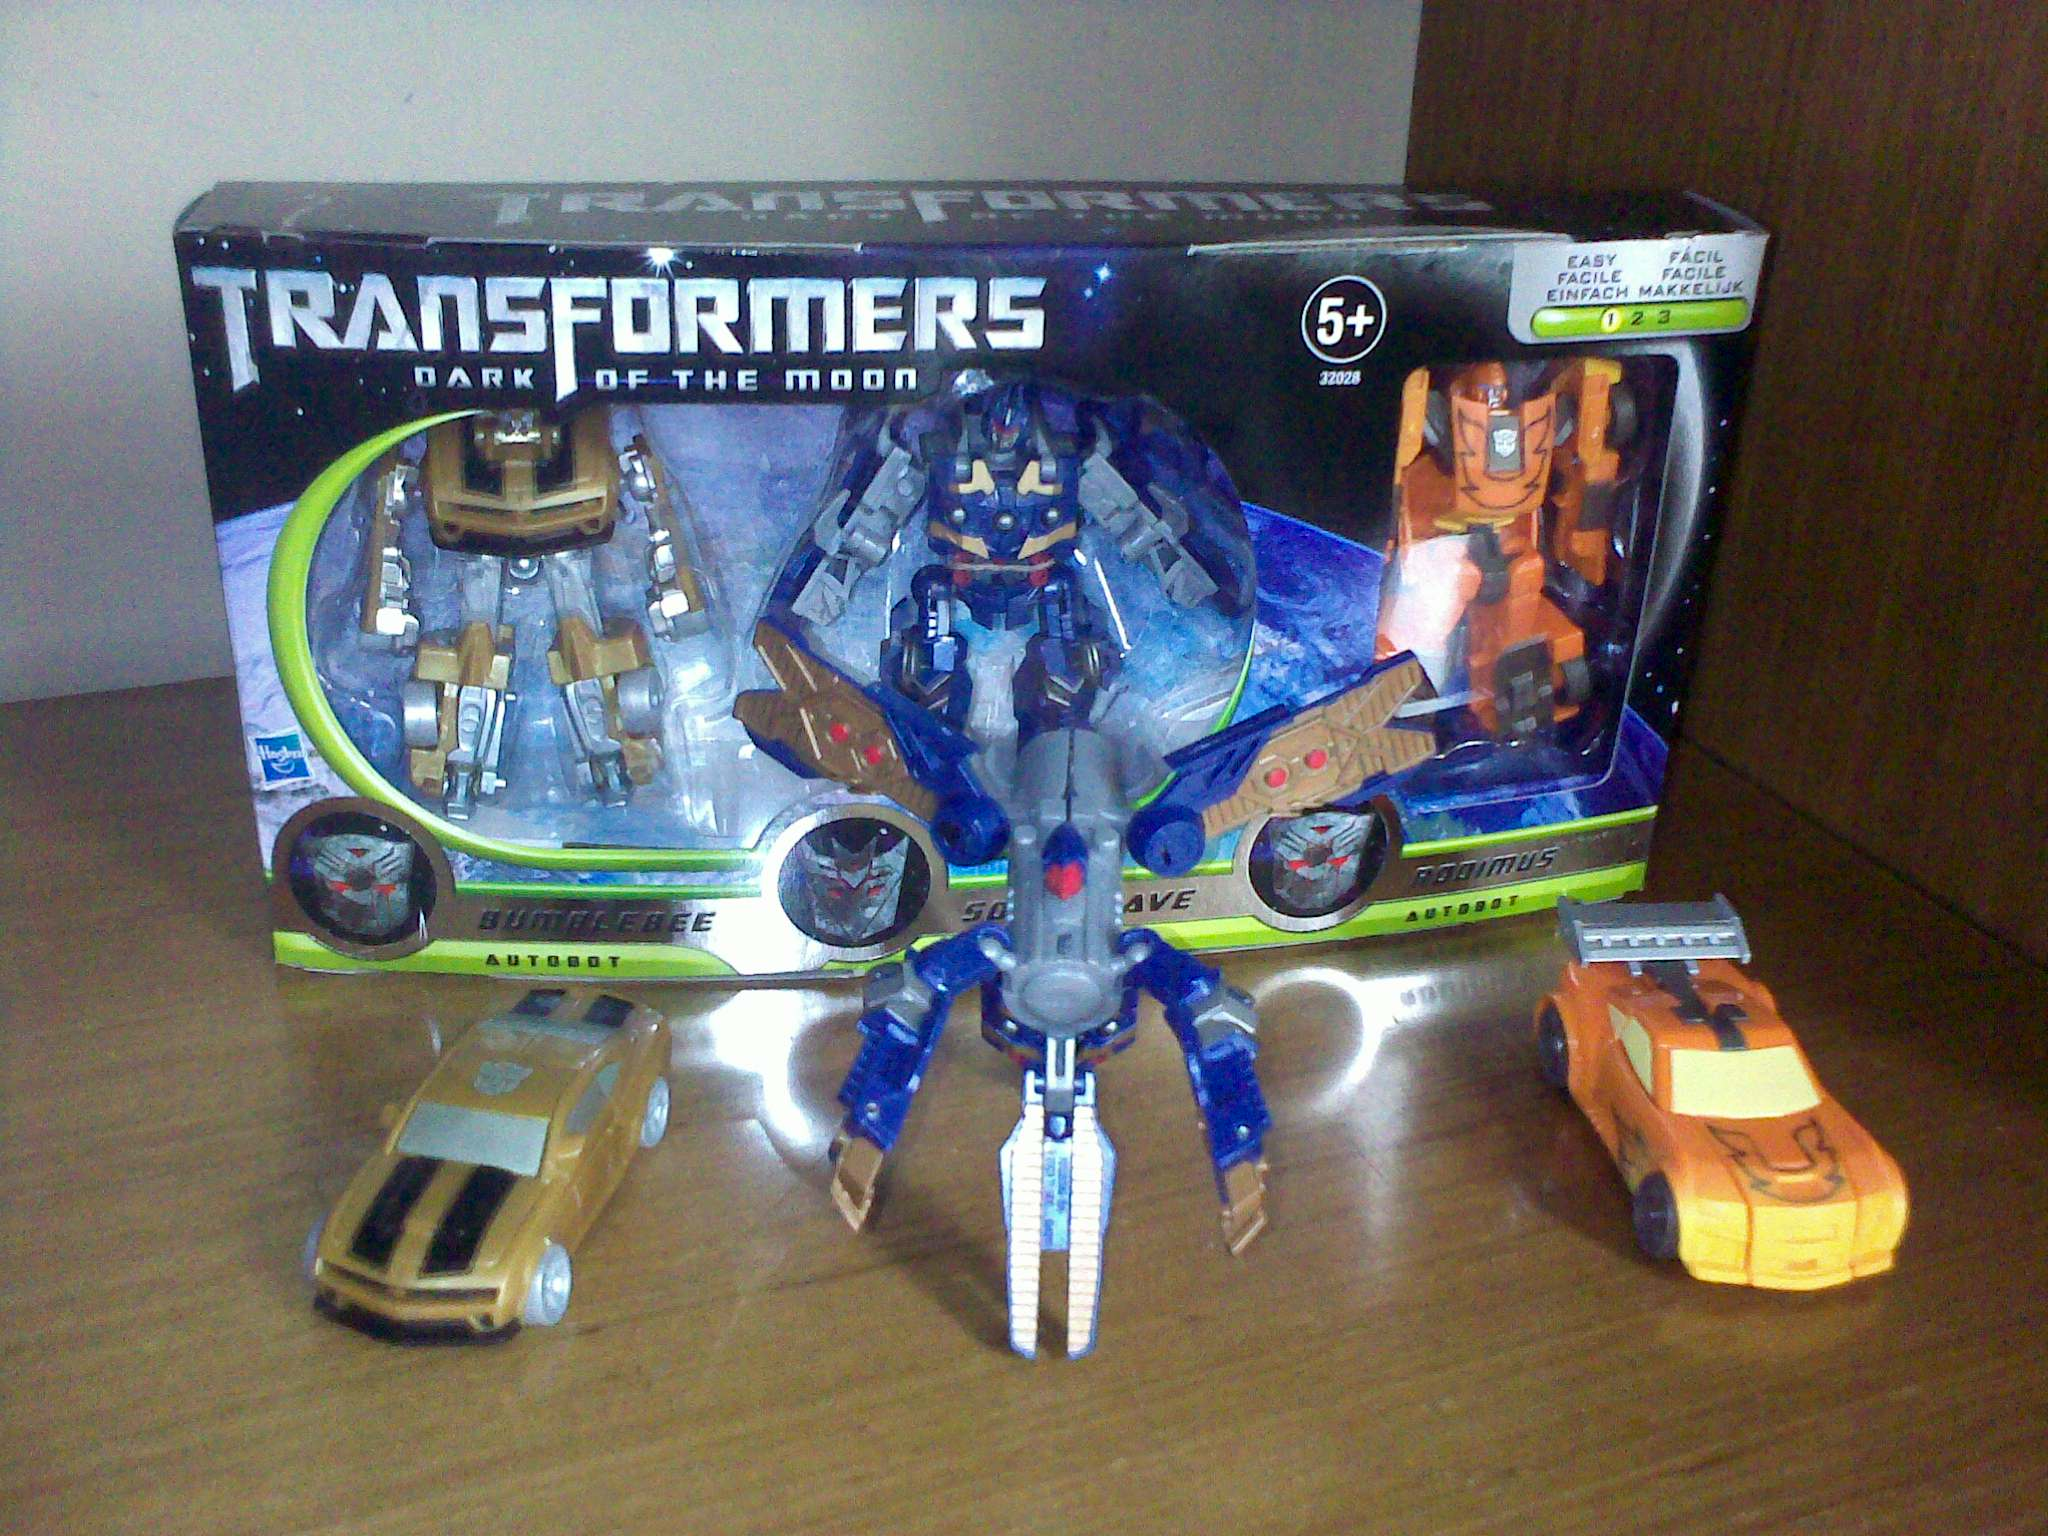 Italy Transformers Sightings-20062011522.jpg